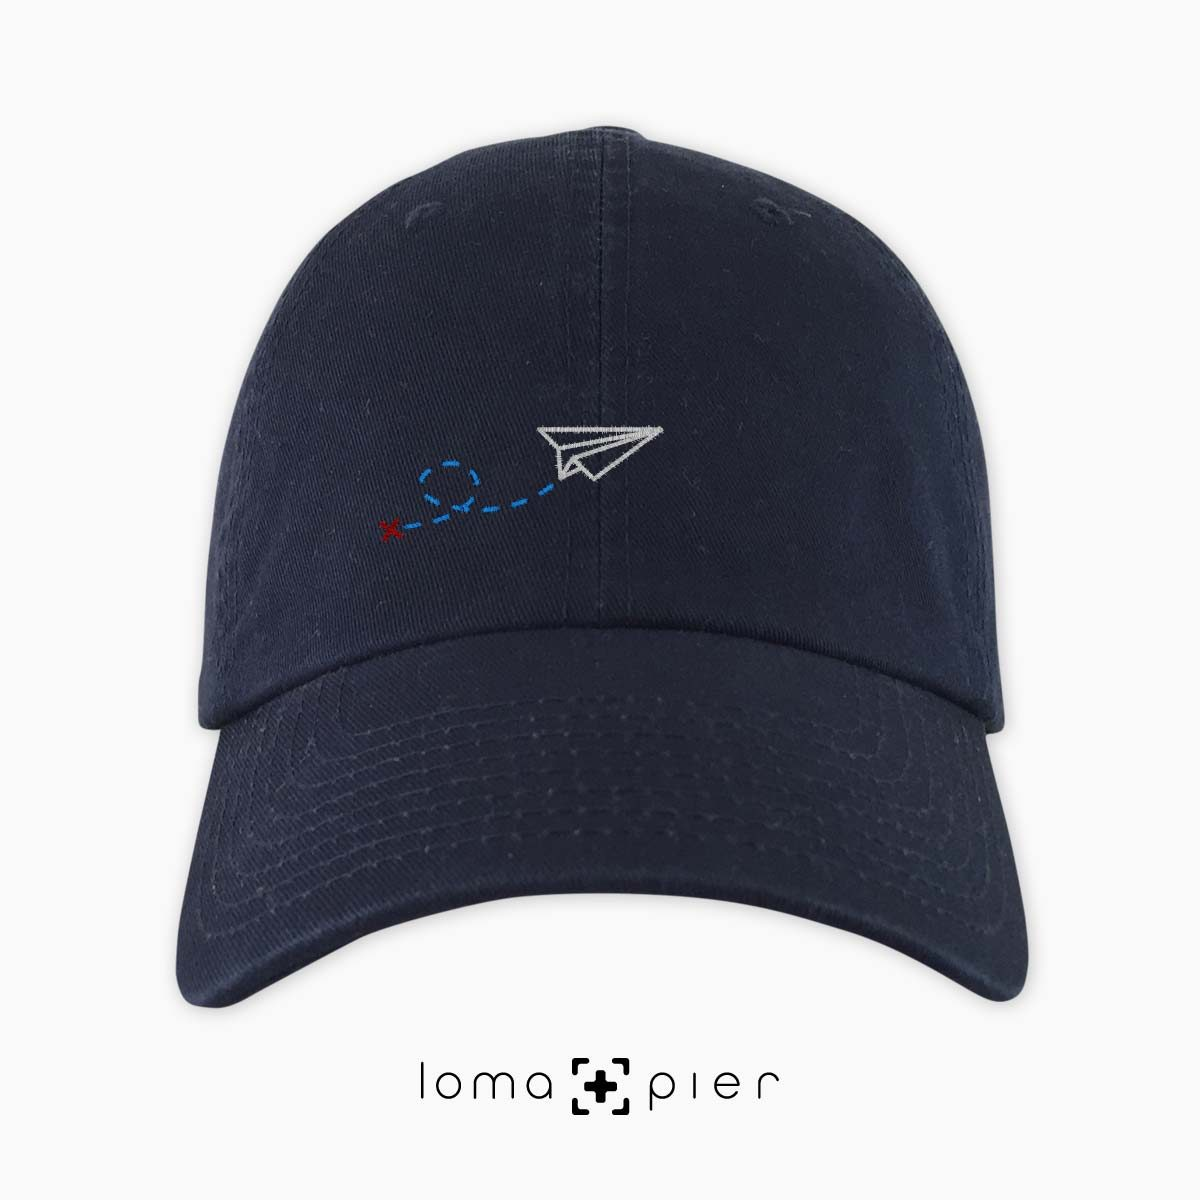 PAPER AIRPLANE icon embroidered on a navy blue dad hat by loma+pier hat store made in the USA